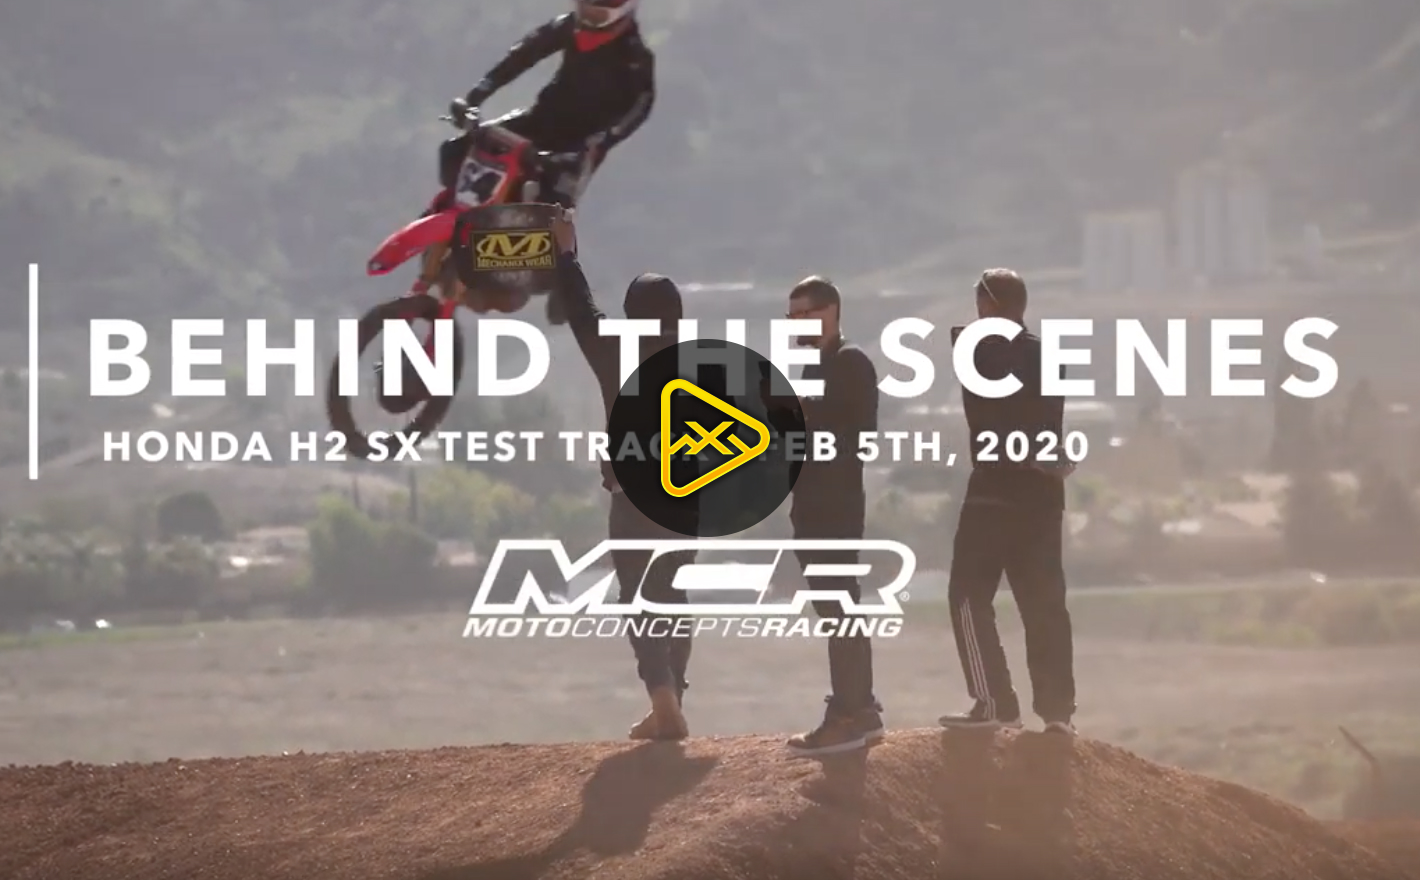 Behind the Scenes with MCR / Honda at Test Track